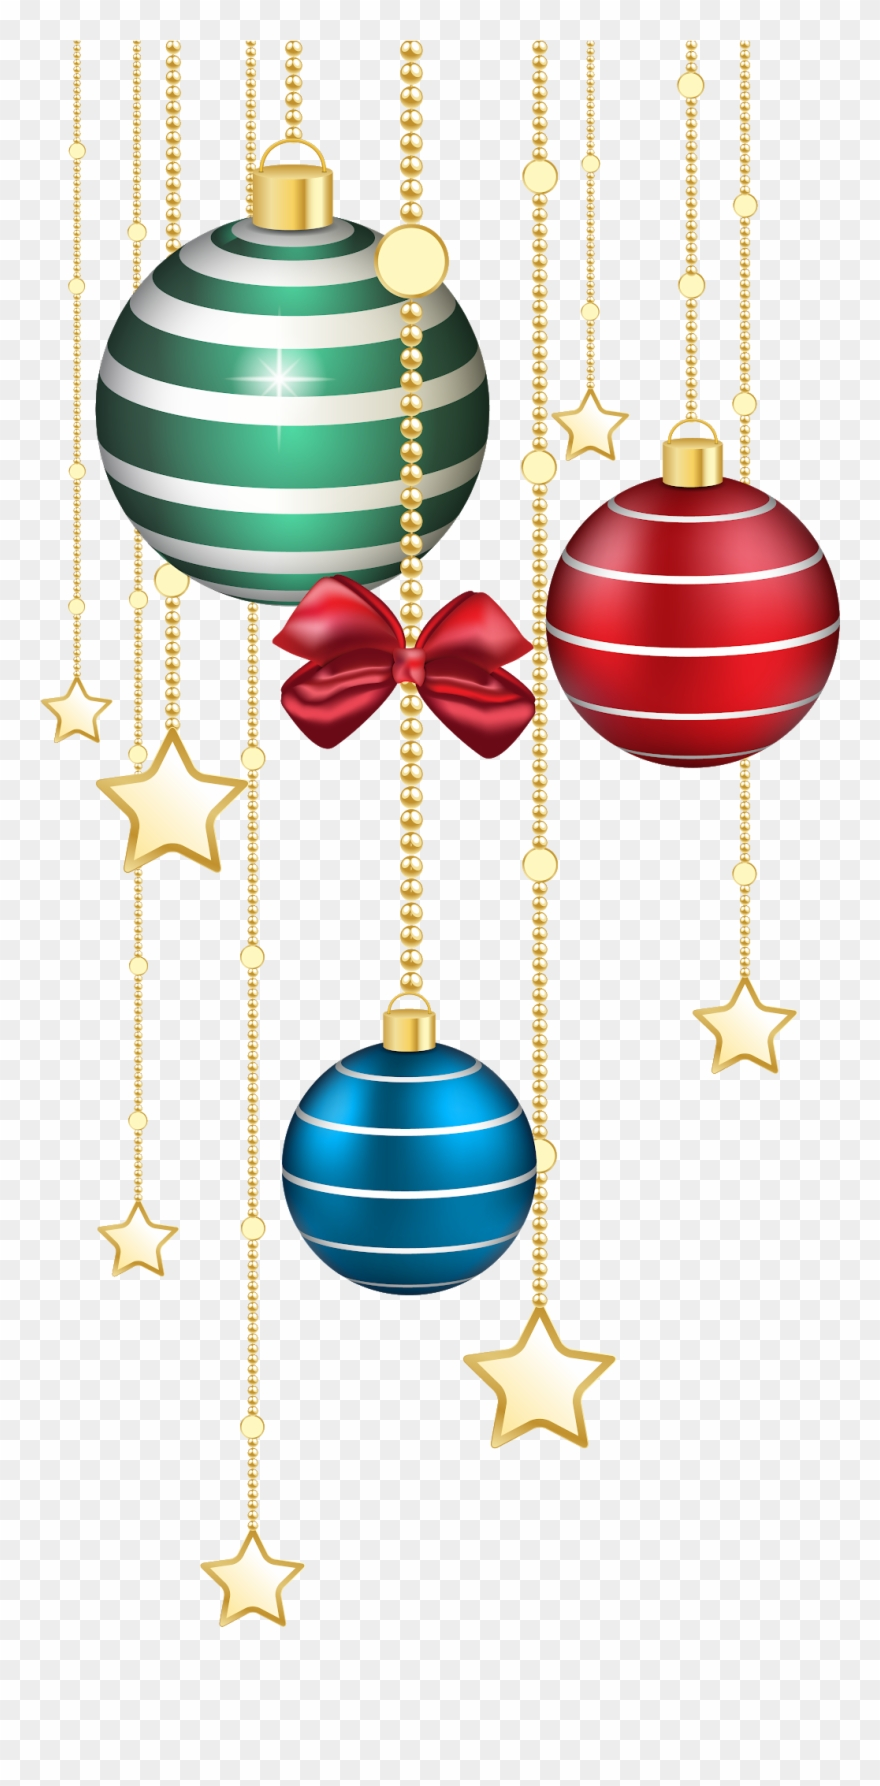 Christmas Clipart, Christmas Balls, Merry Christmas, - Christmas Decorations Transparent Background - Png